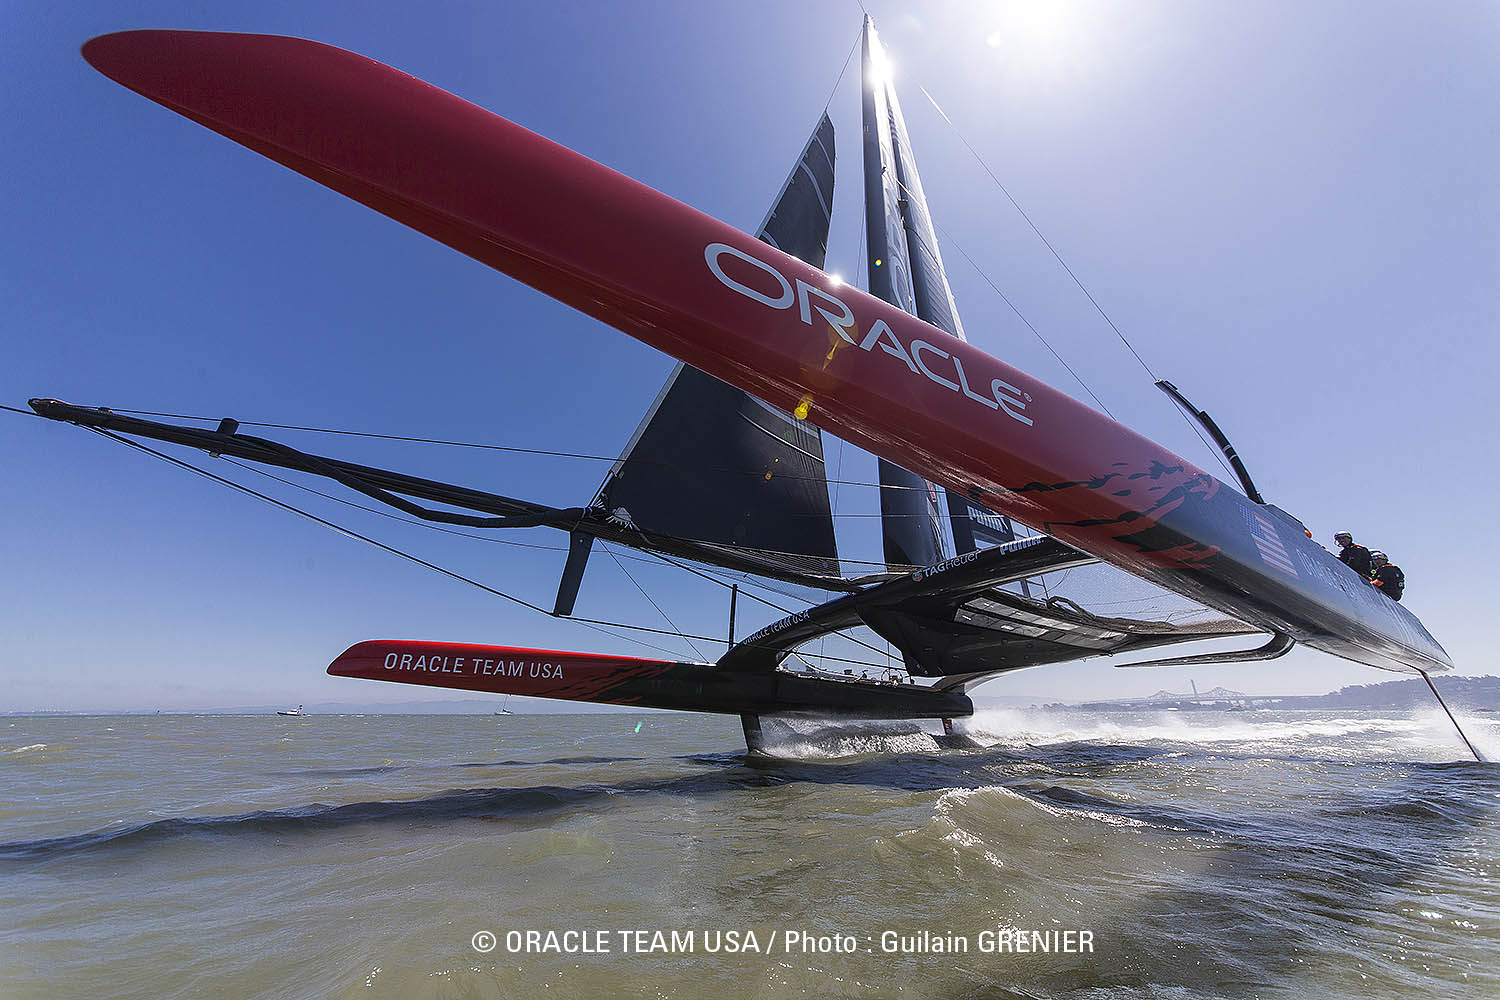 The Oracle Team USA yacht is a catamaran that rises up onto foils as it speeds through the water. Photo: Courtesy Oracle Team USA